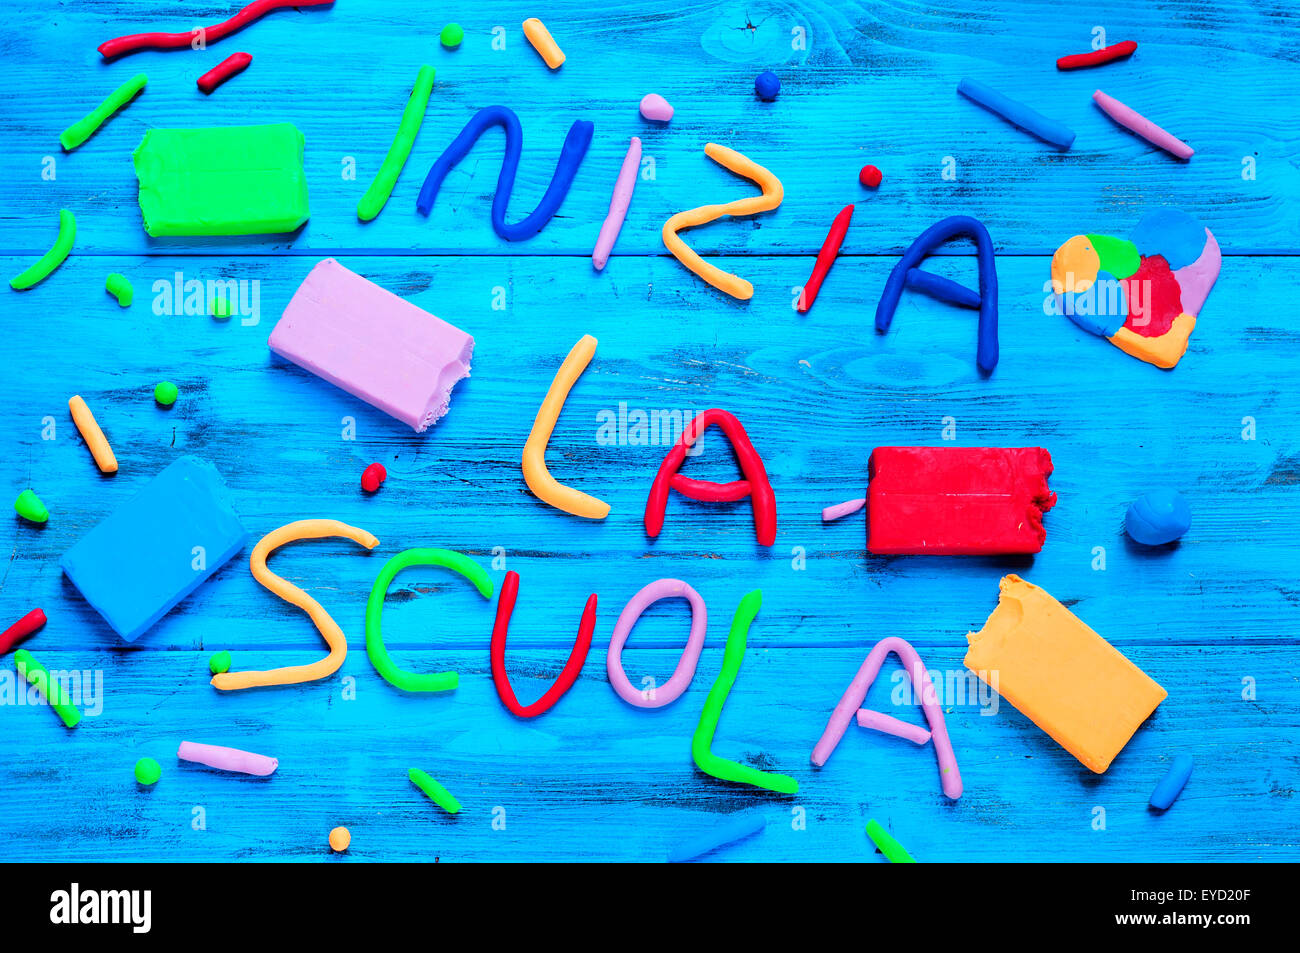 the sentence inizia la scuola, back to school in italian, written with modelling clay of different colors, on a - Stock Image